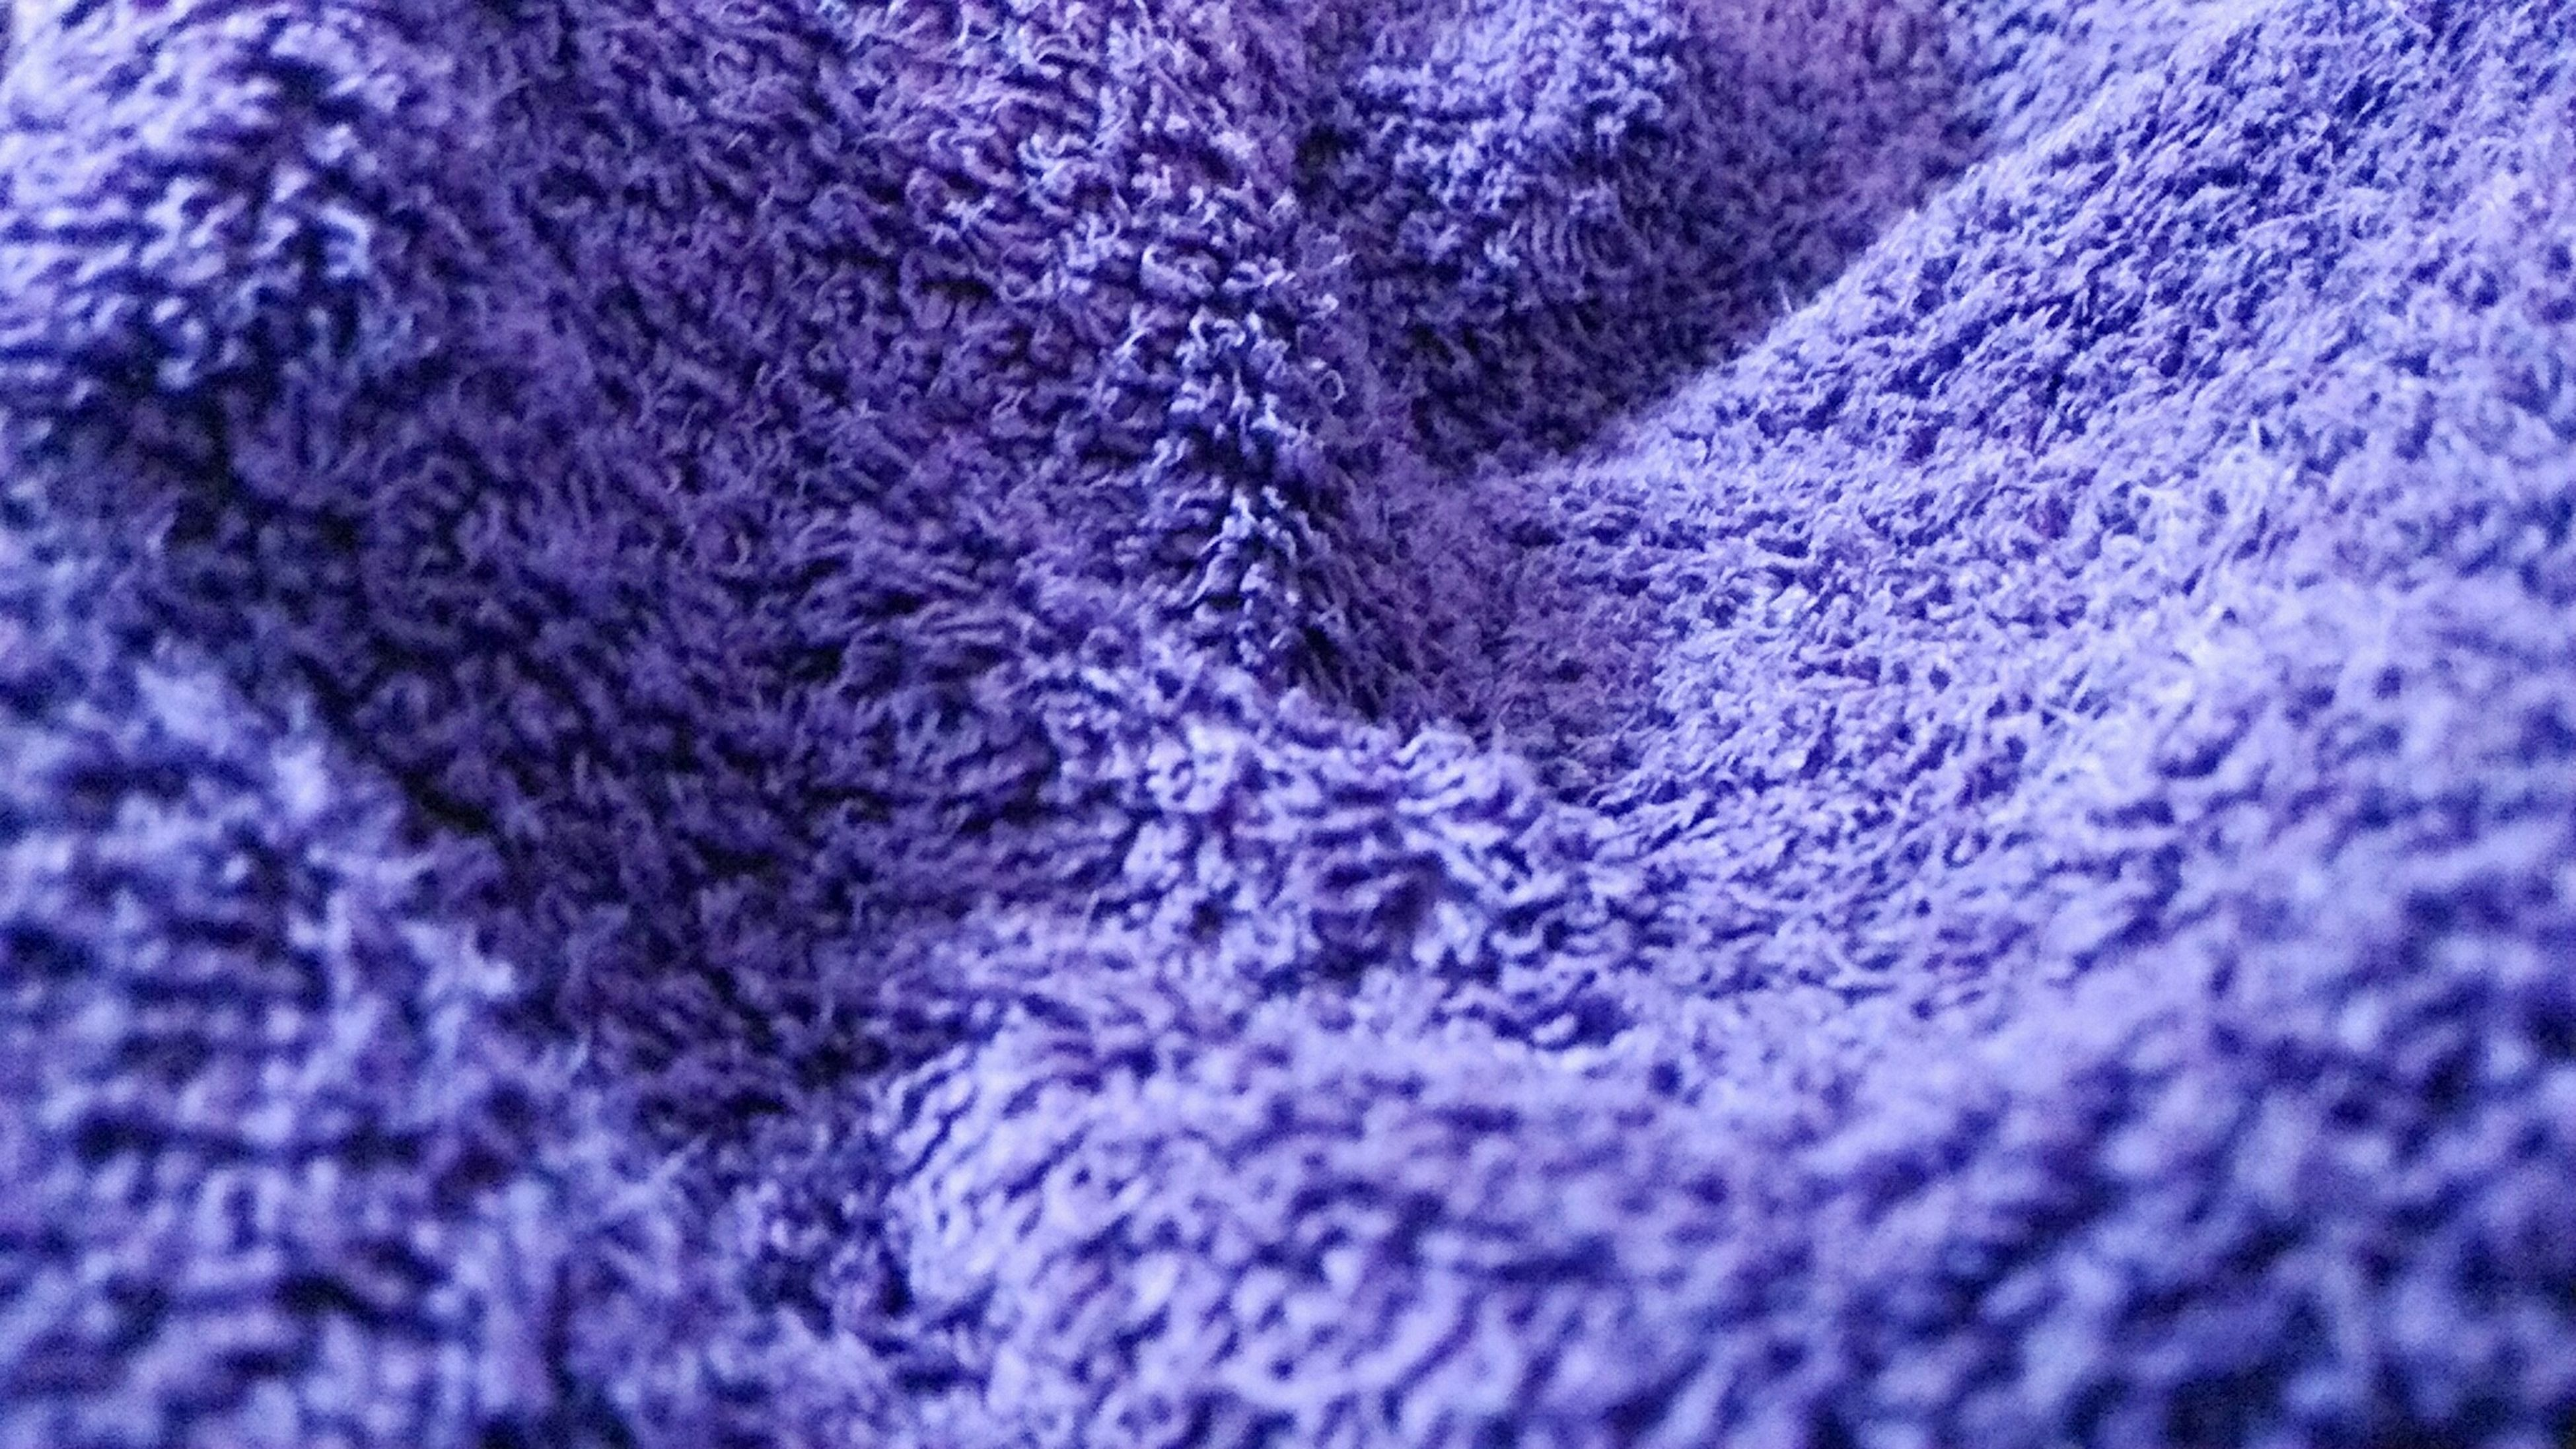 full frame, backgrounds, blue, textured, purple, pattern, close-up, textile, indoors, fabric, selective focus, detail, abstract, no people, multi colored, design, macro, nature, high angle view, day